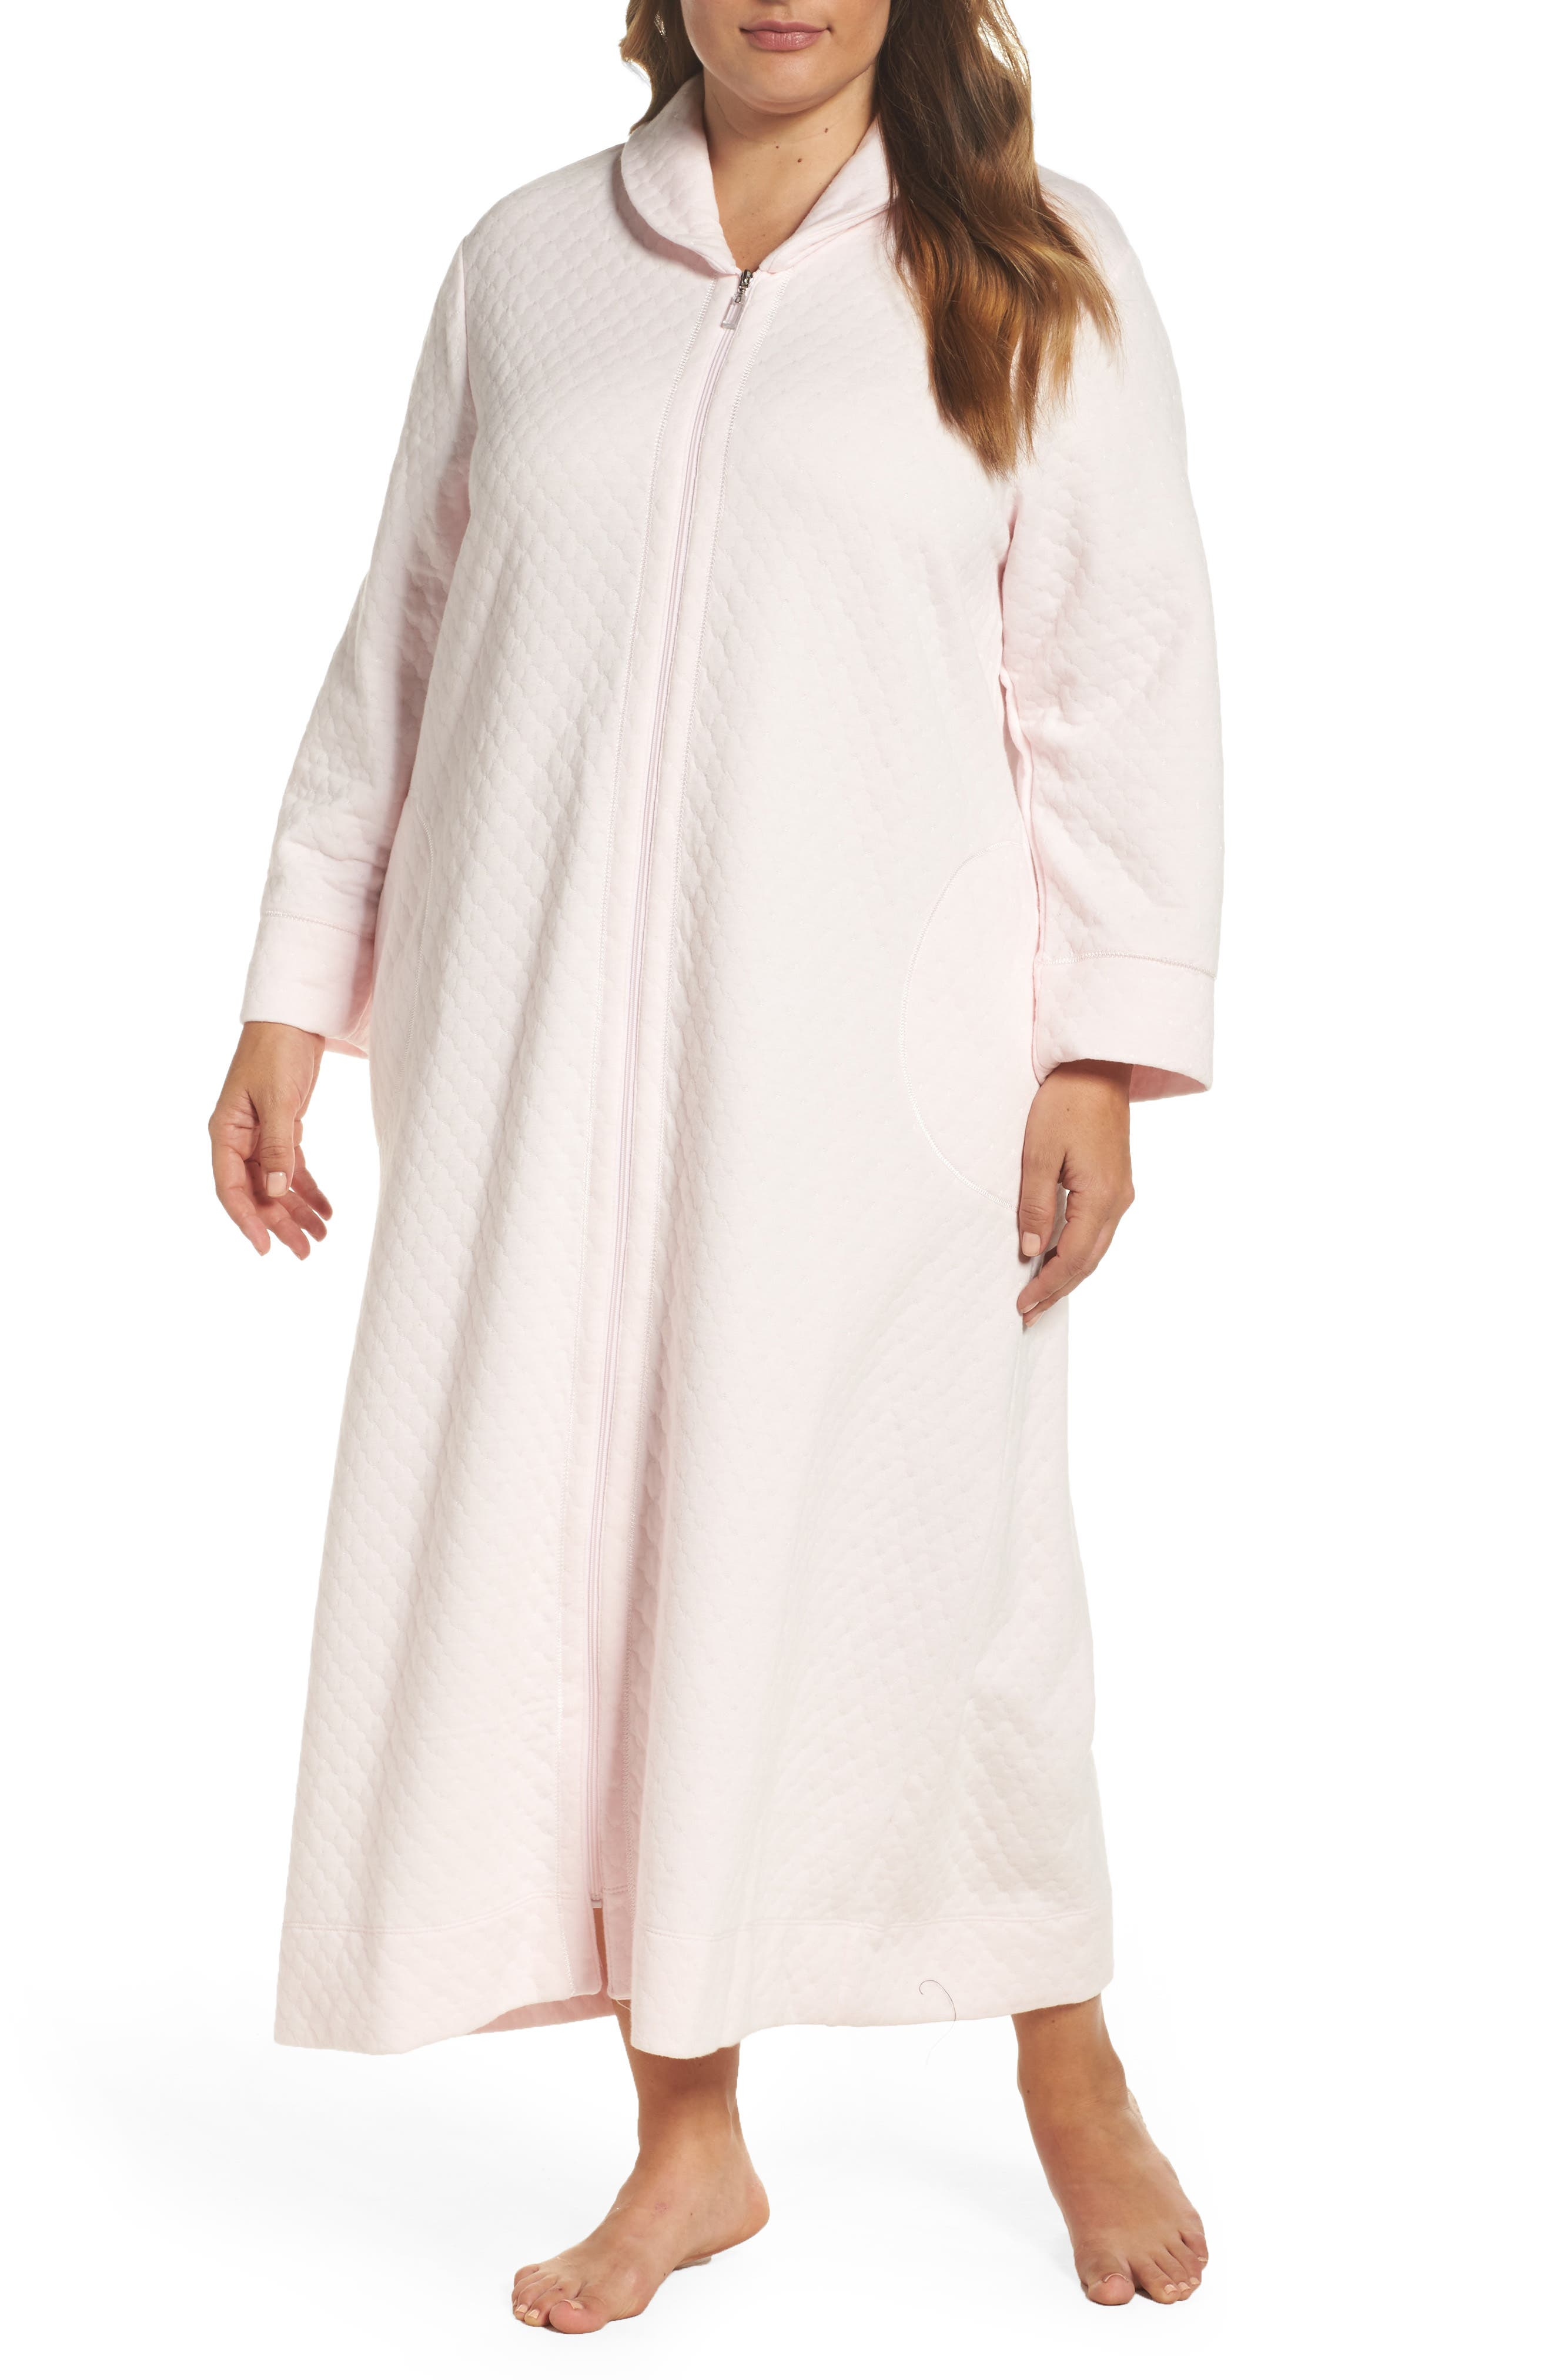 Carole Hochman Quilted Zip Robe (Plus Size)